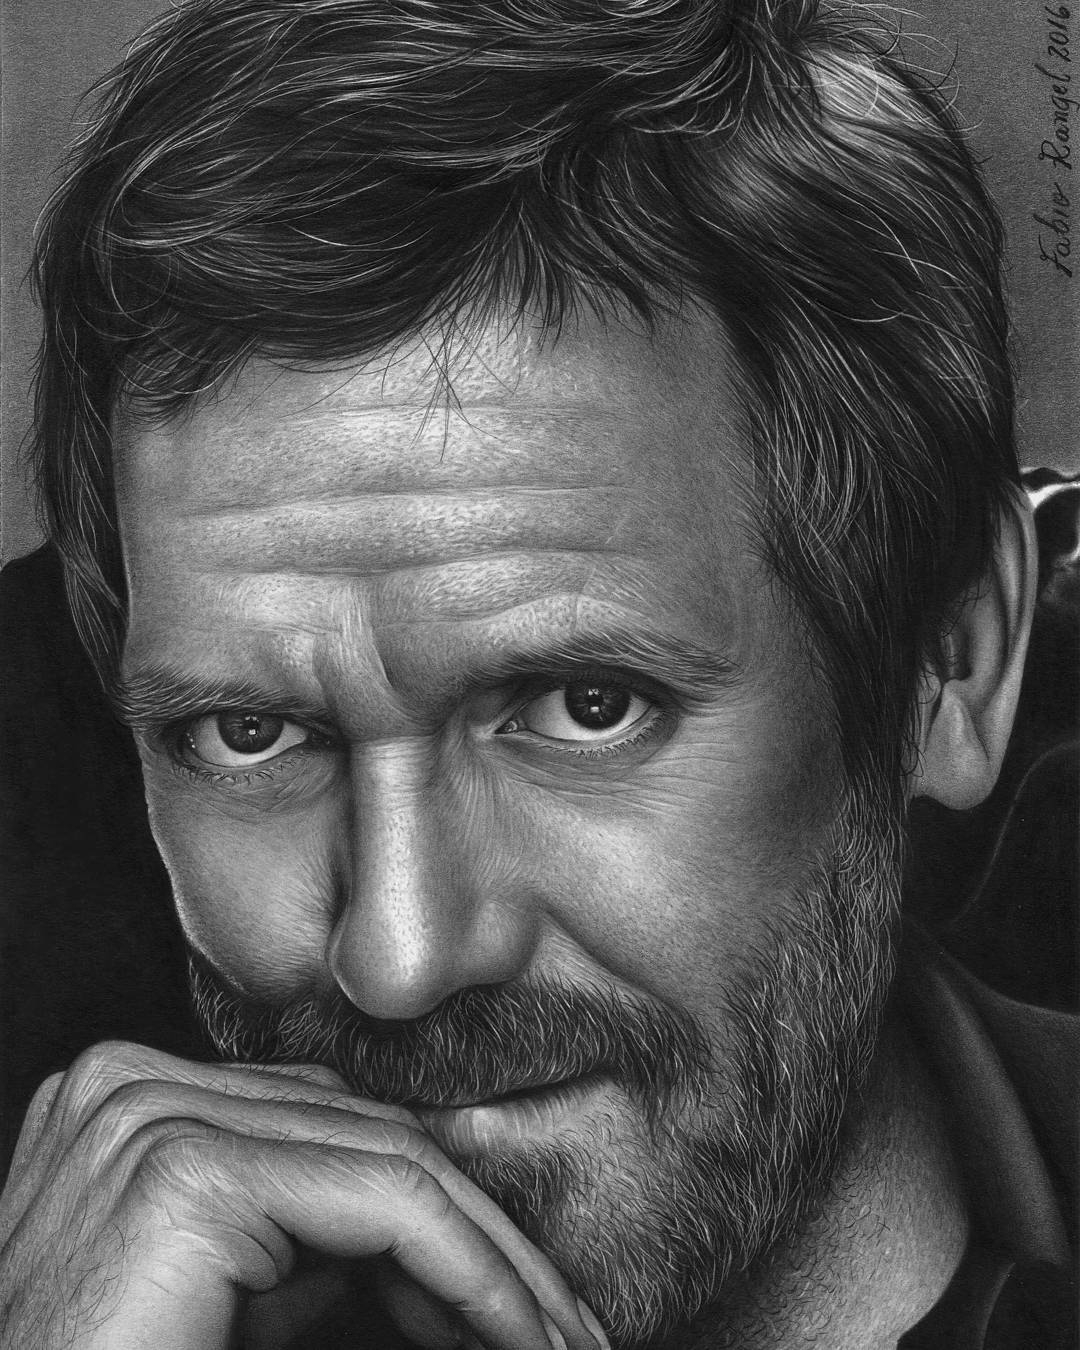 11-Hugh-Laurie-Gregory-House-Fabio-Rangel-Drawings-of-Protagonists-from-TV-and-Movies-www-designstack-co